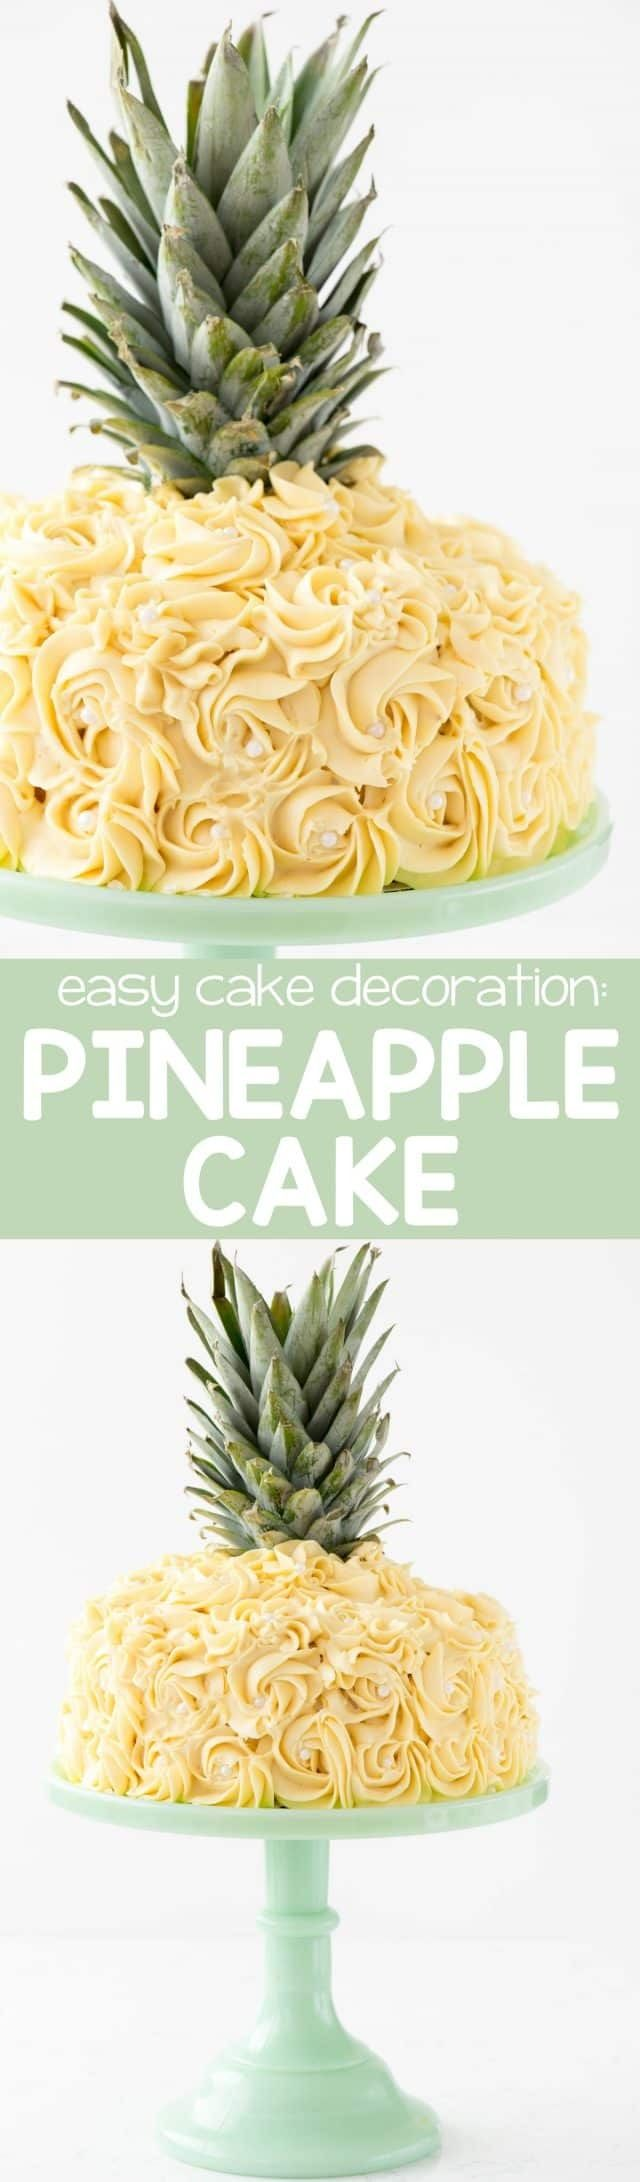 Pineapple Cake - this is the EASY way to make a pineapple cake for a pineapple party! Simply frost a 2-layer cake with yellow rosette swirls and you have a pineapple cake EASILY! - from crazyforcrust.com